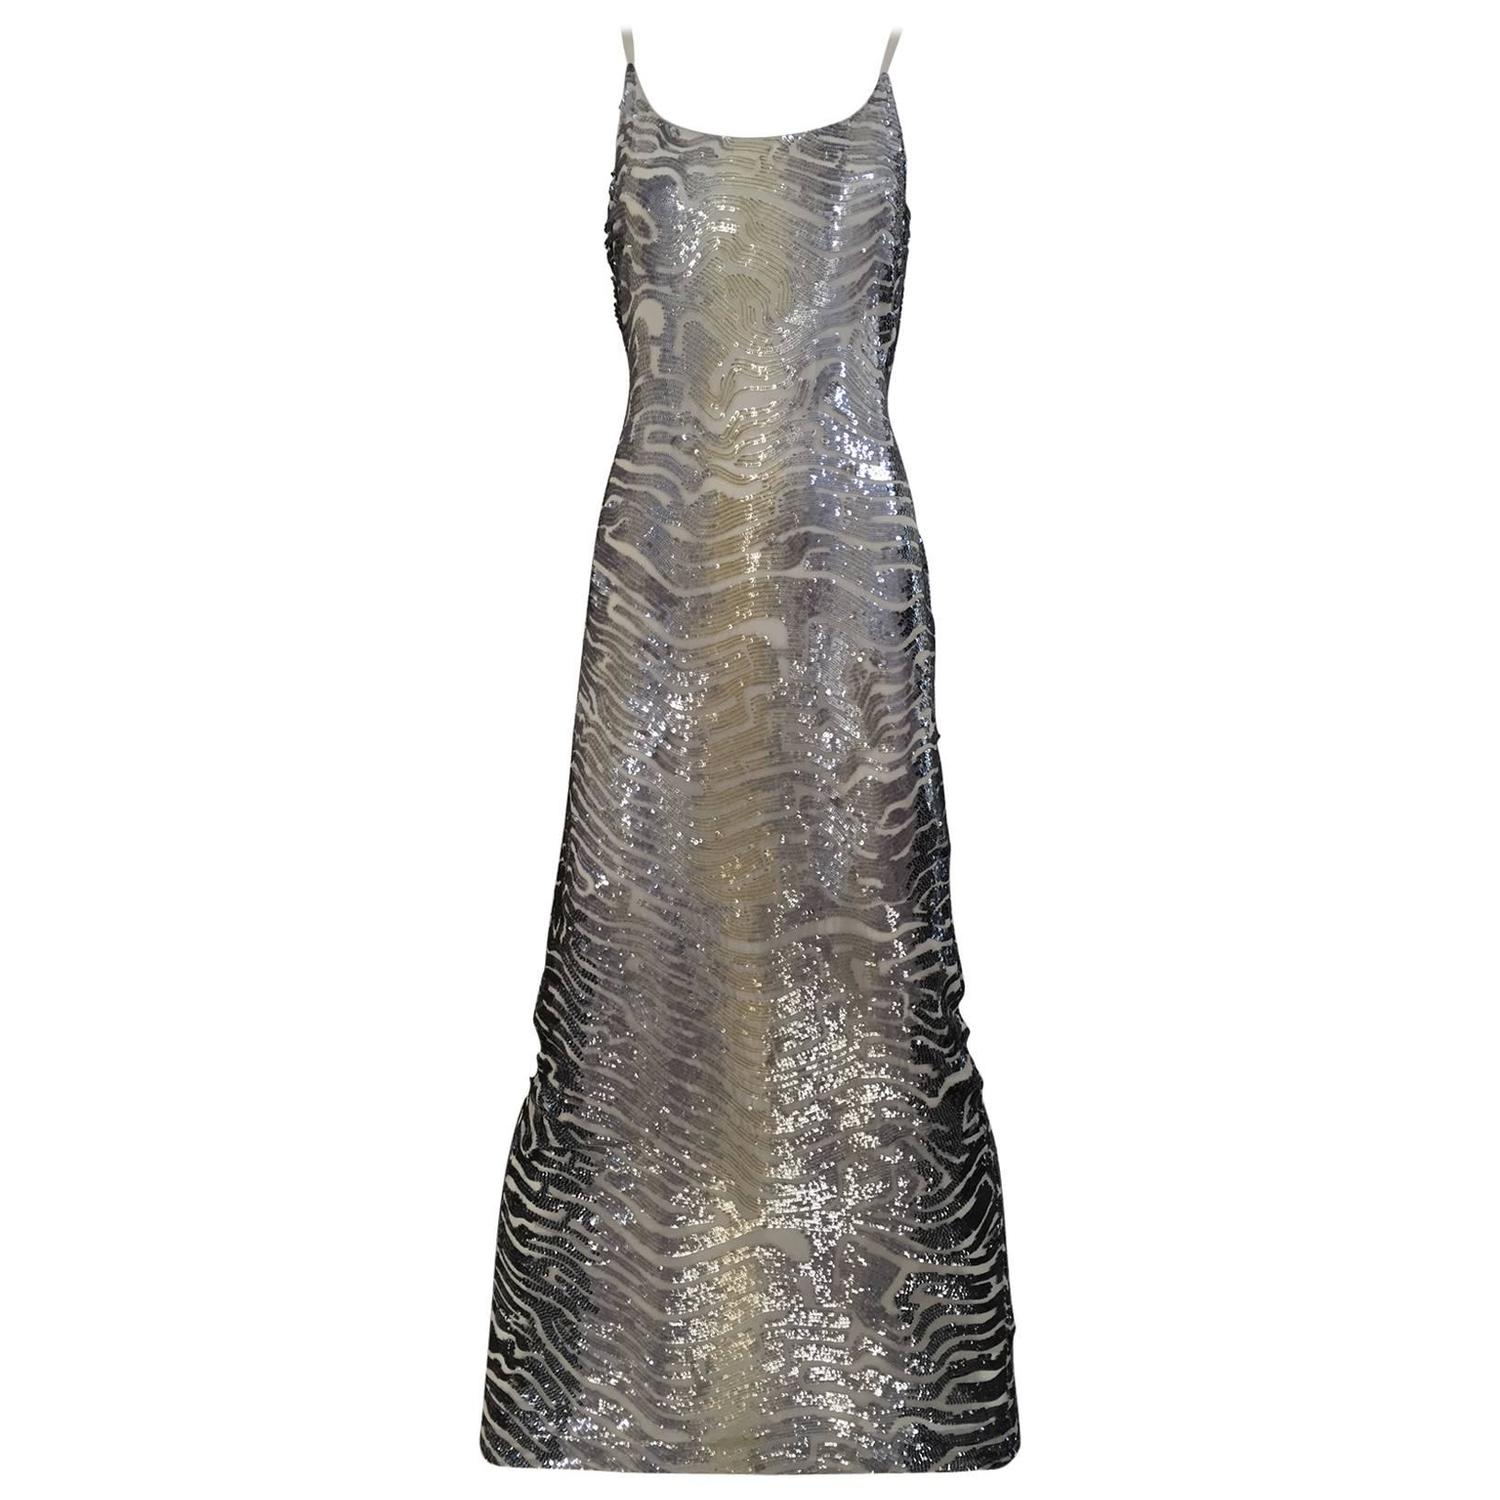 Giorgio Armani Black Label Vintage Beaded Gown New 40 / 6 For Sale ...